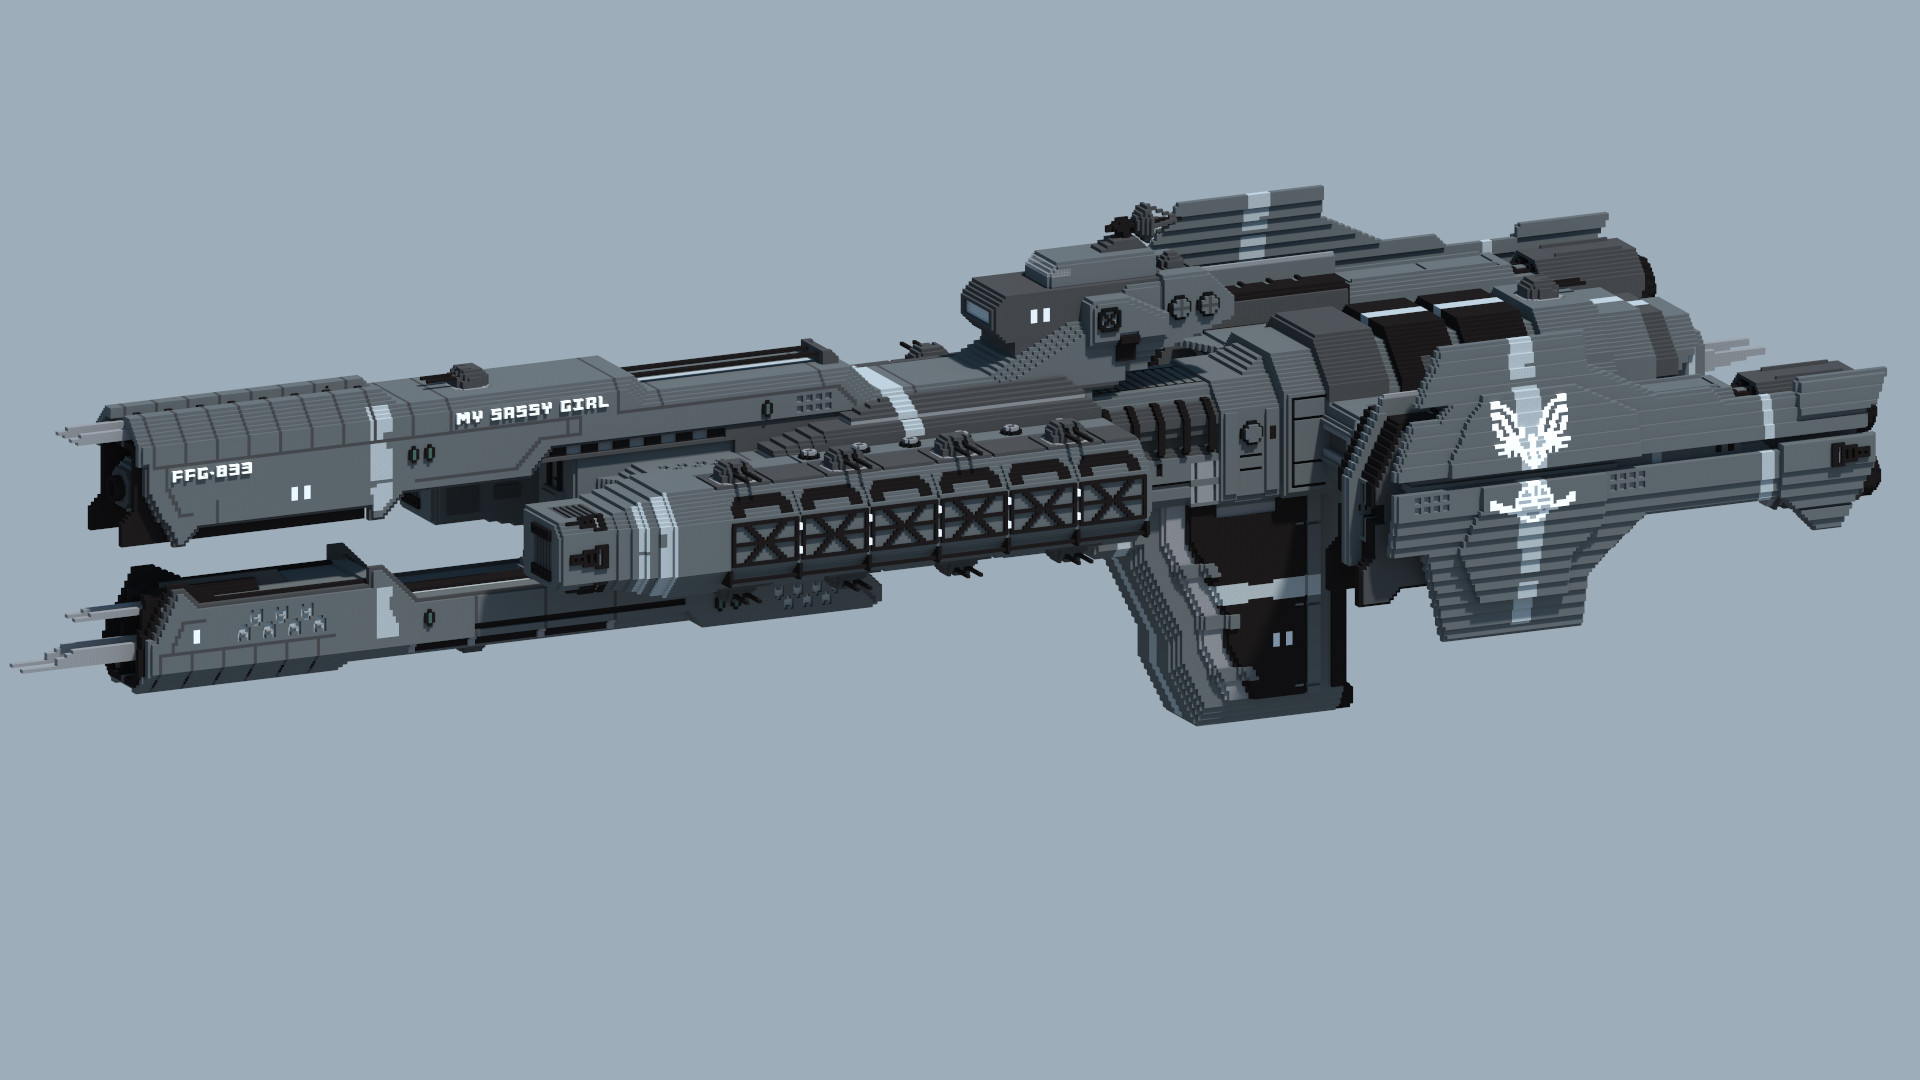 I made a UNSC Frigate from Halo in Minecraft